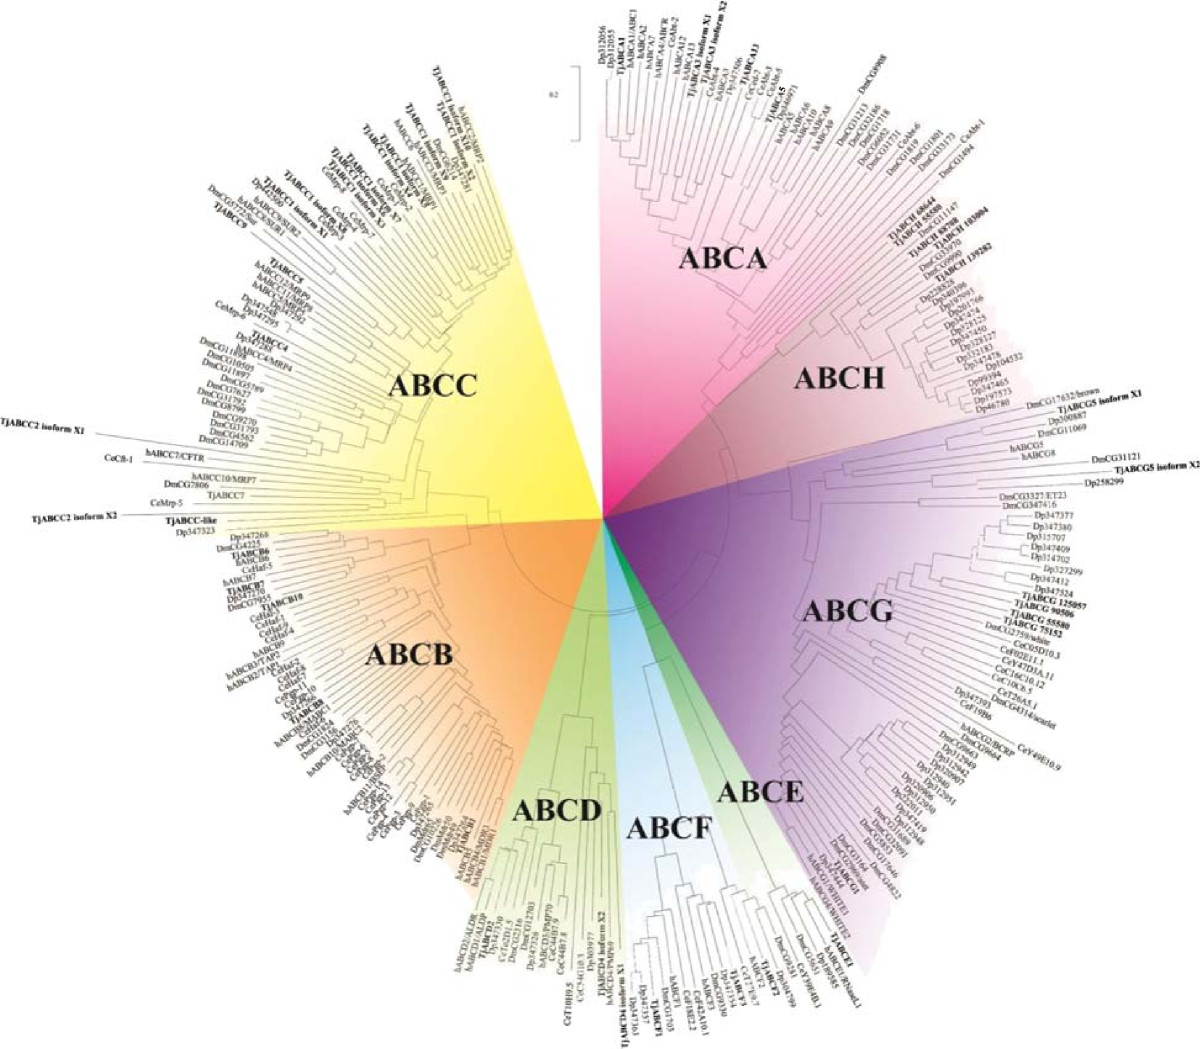 https://static-content.springer.com/image/art%3A10.1186%2F1471-2164-15-651/MediaObjects/12864_2014_Article_6676_Fig1_HTML.jpg